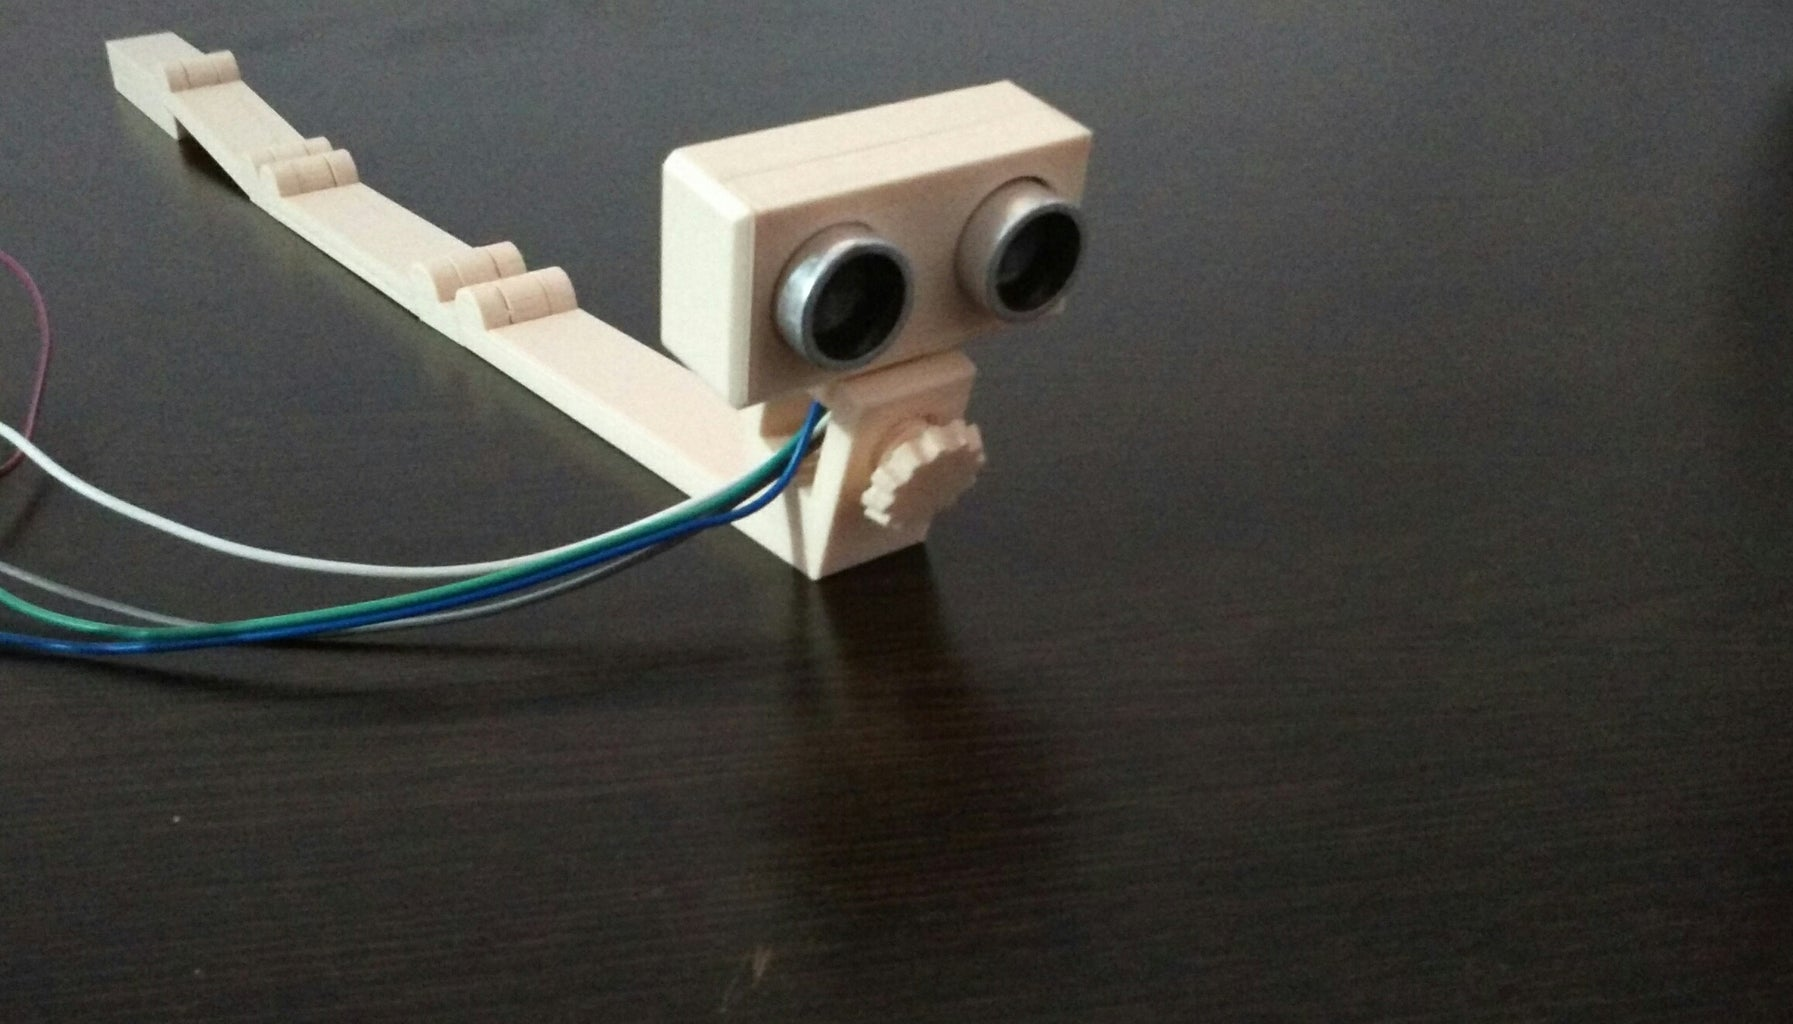 Mounting Sonar Assembly on Stick